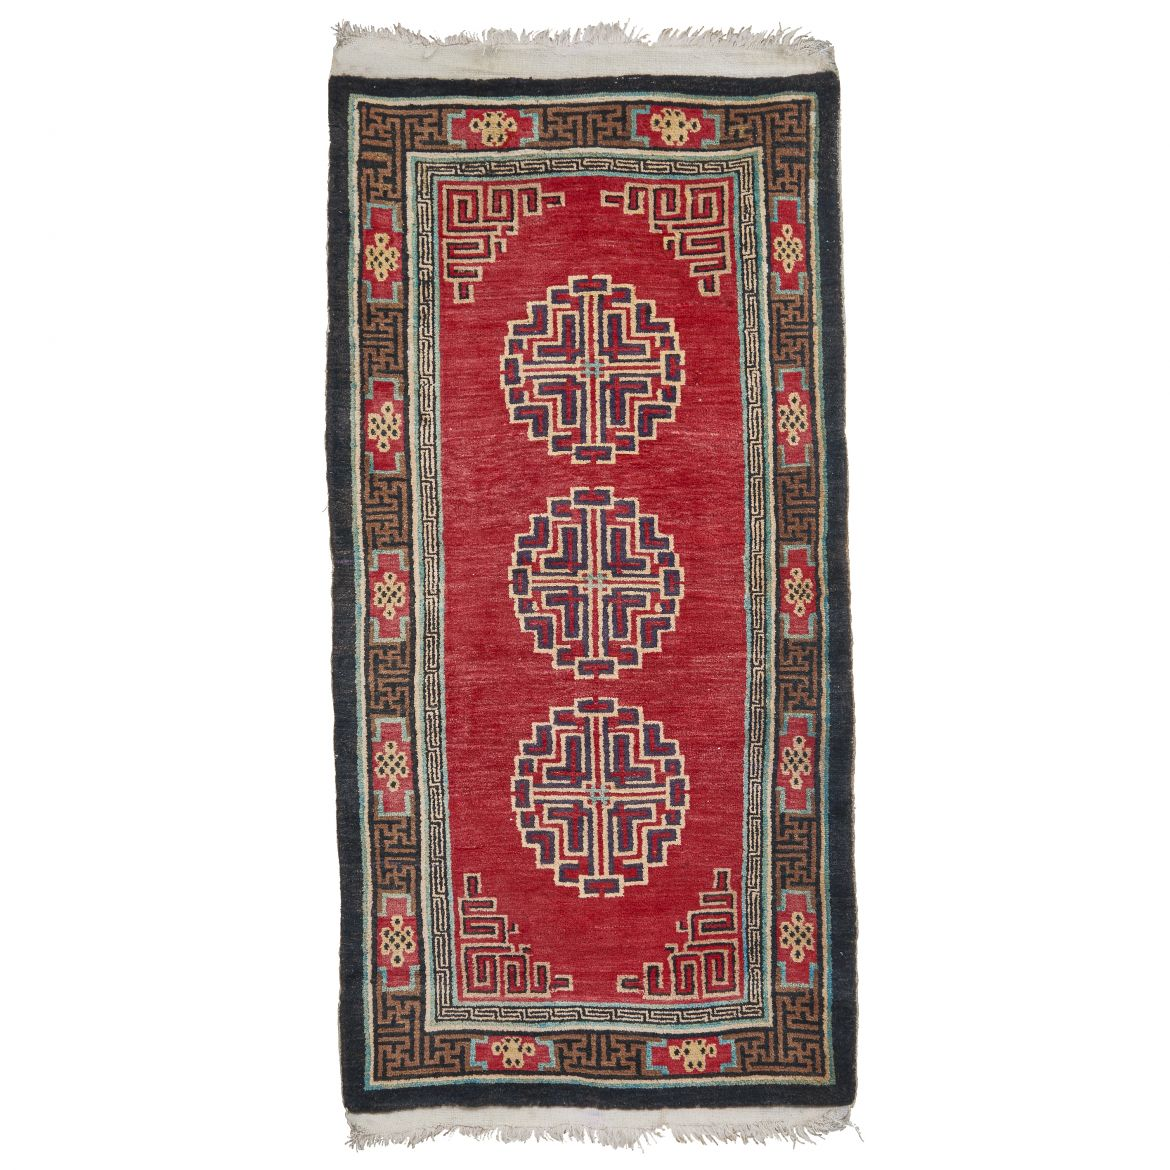 Tibetan Tufted Carpet